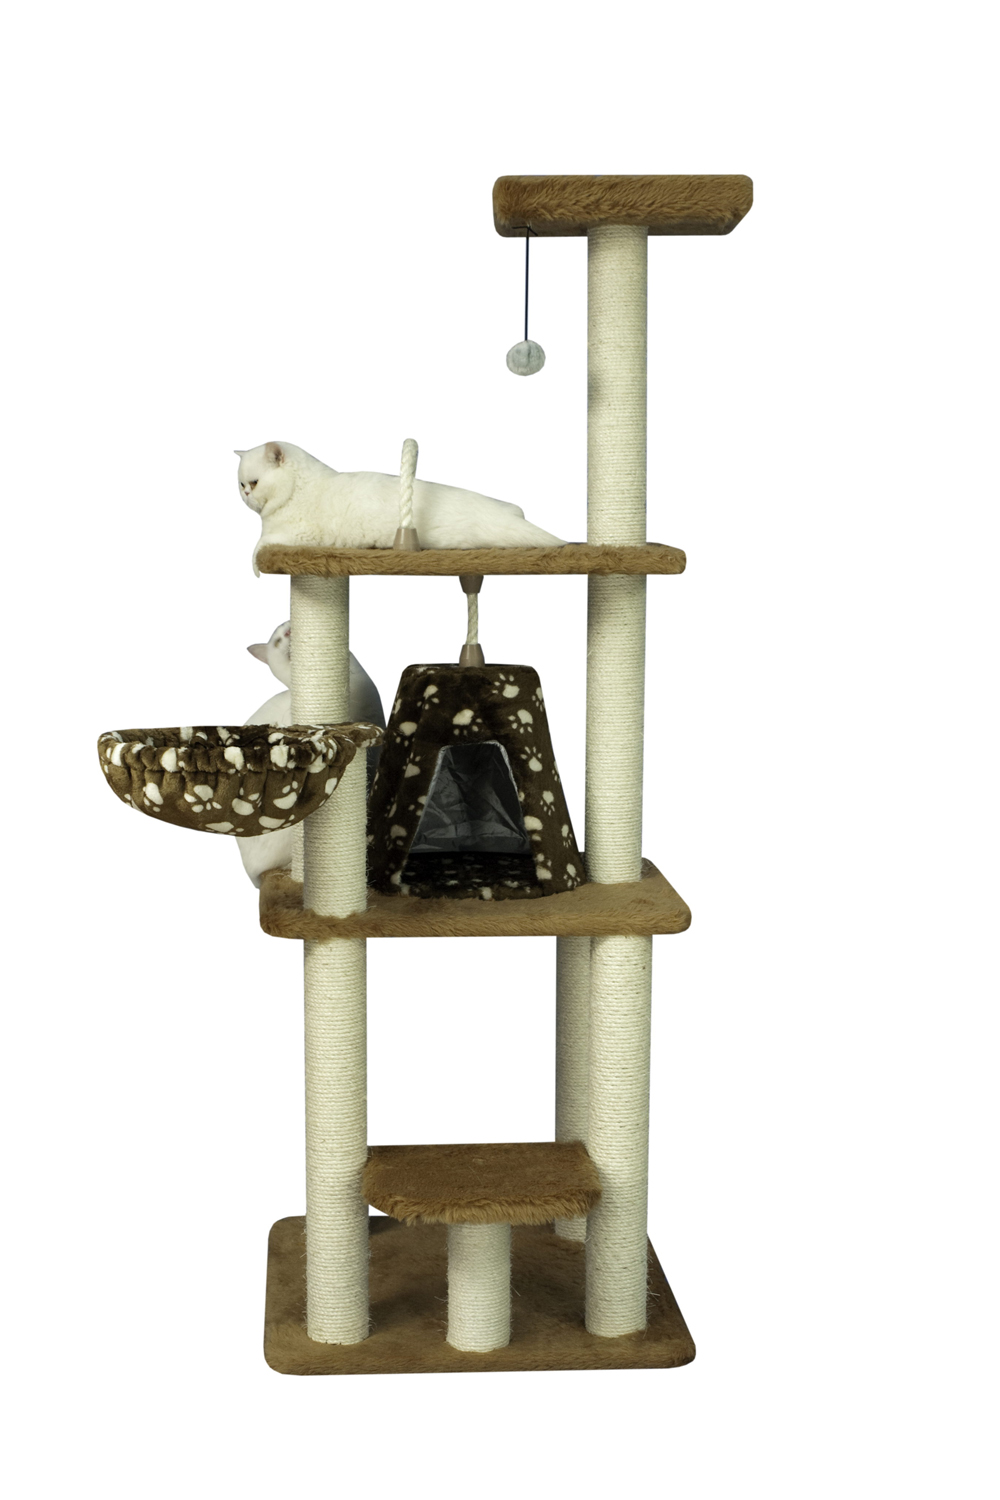 Armarkat 64-Inch Ultra-thick Faux Fur Classic Cat Tower Tree - Chocolate